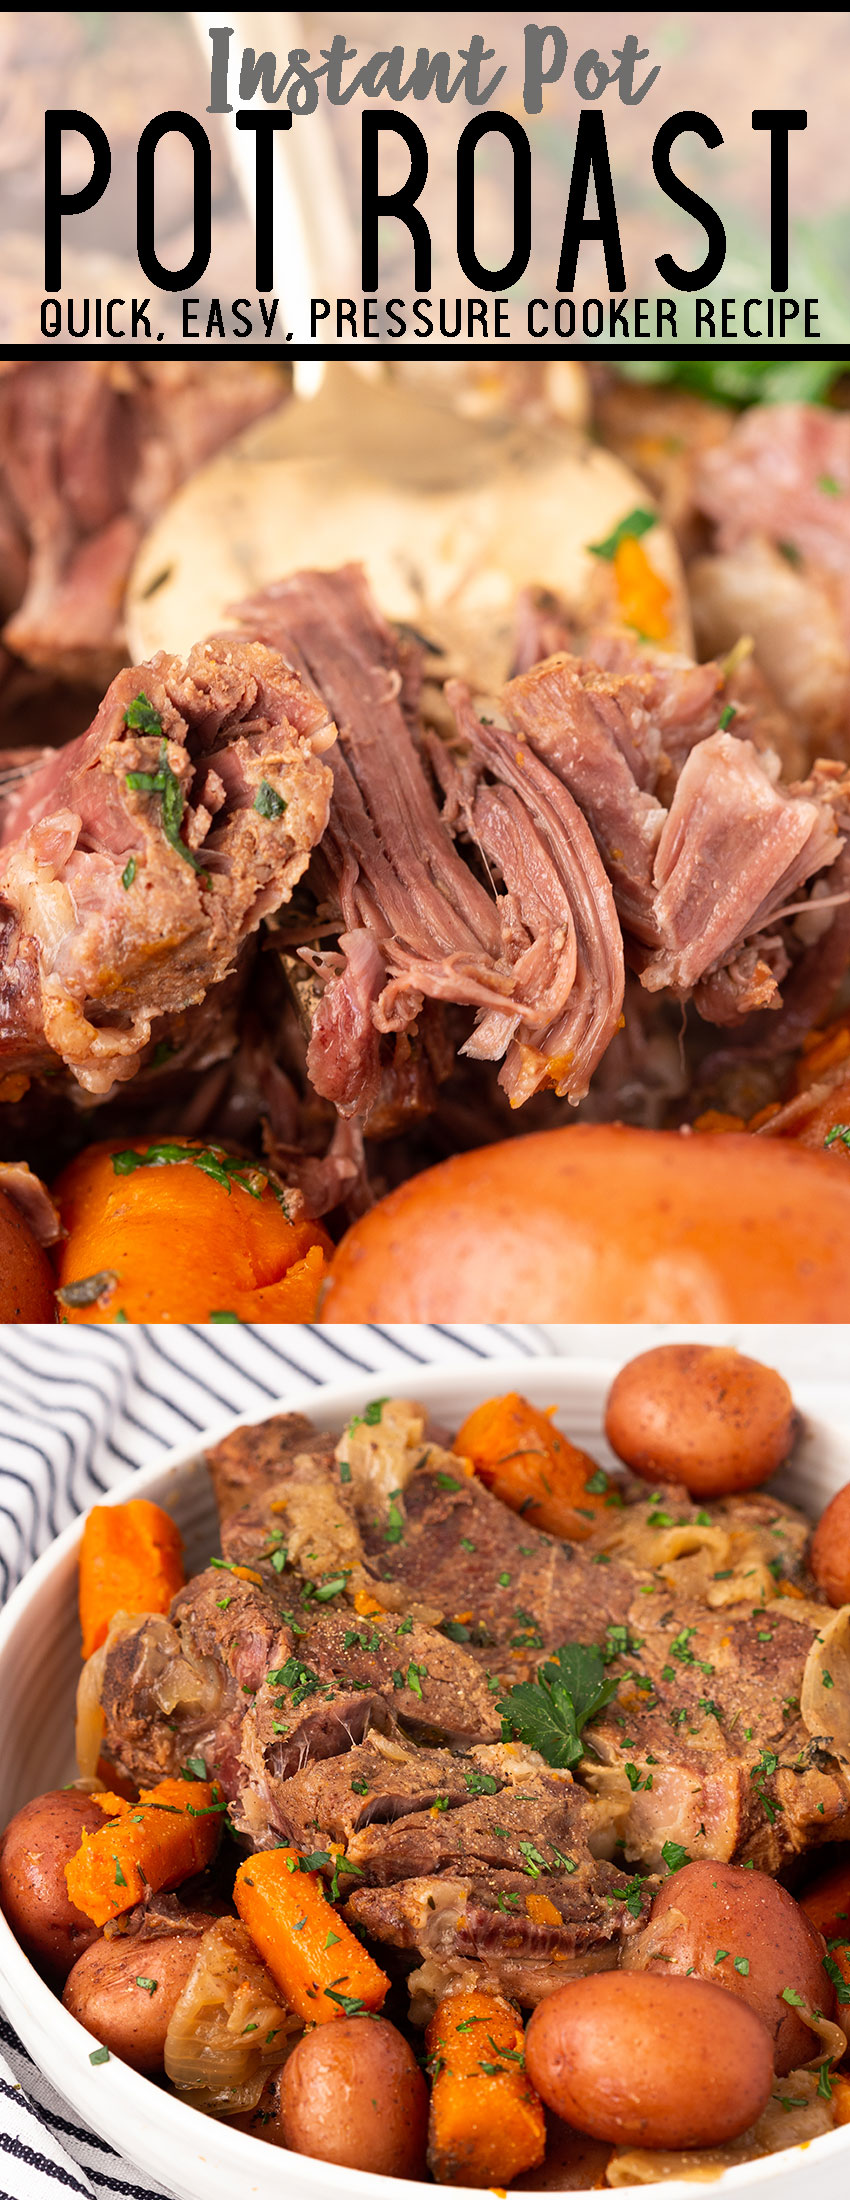 Instant Pot Pot Roast is fork tender, in a fraction of the time, totally flavorful, and can be cooked from frozen!